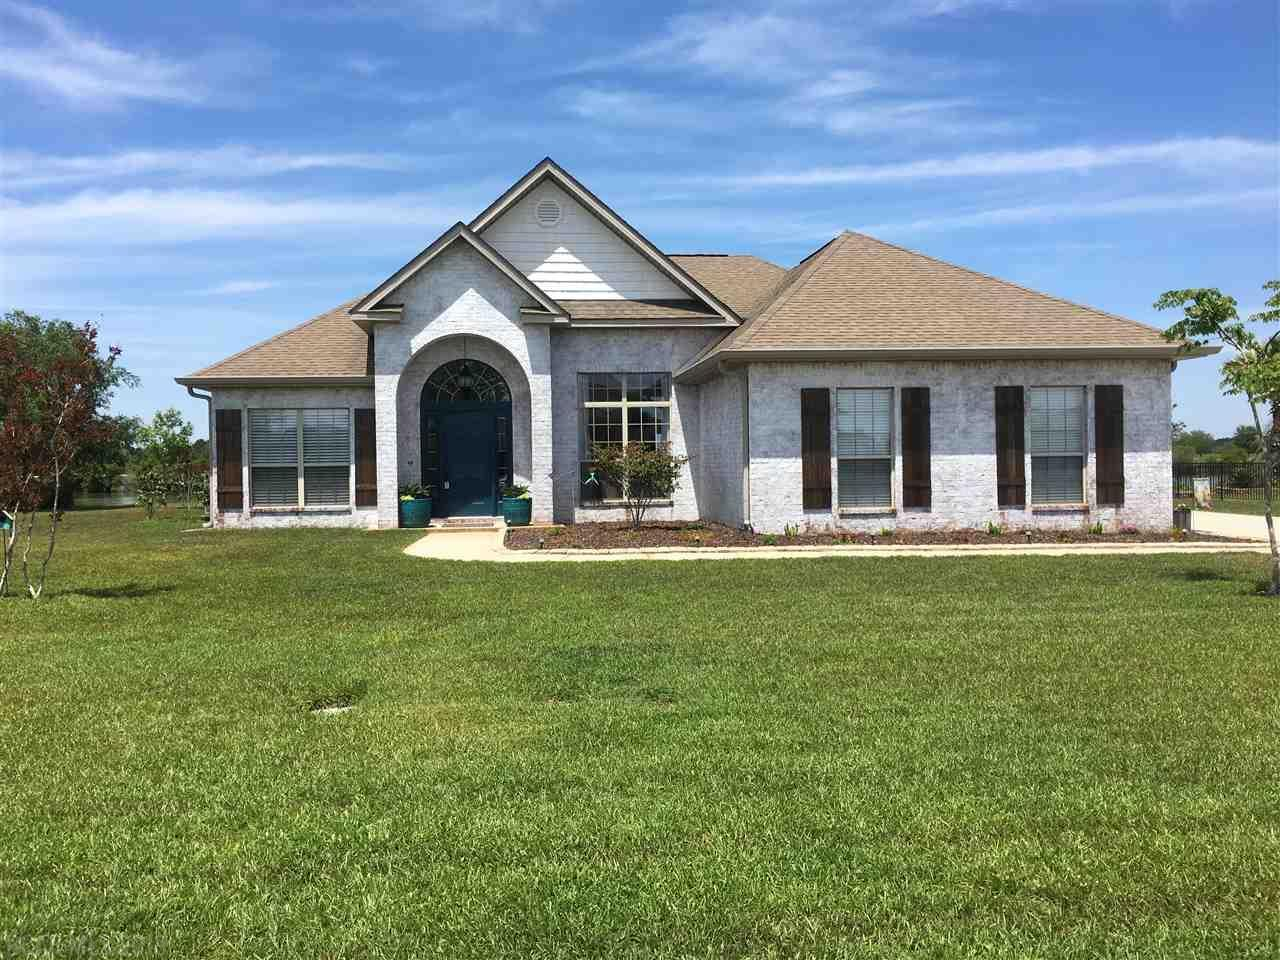 Beautiful Home On the Lake FOR SALE at 638 Royal Troon Circle, Gulf Shores AL